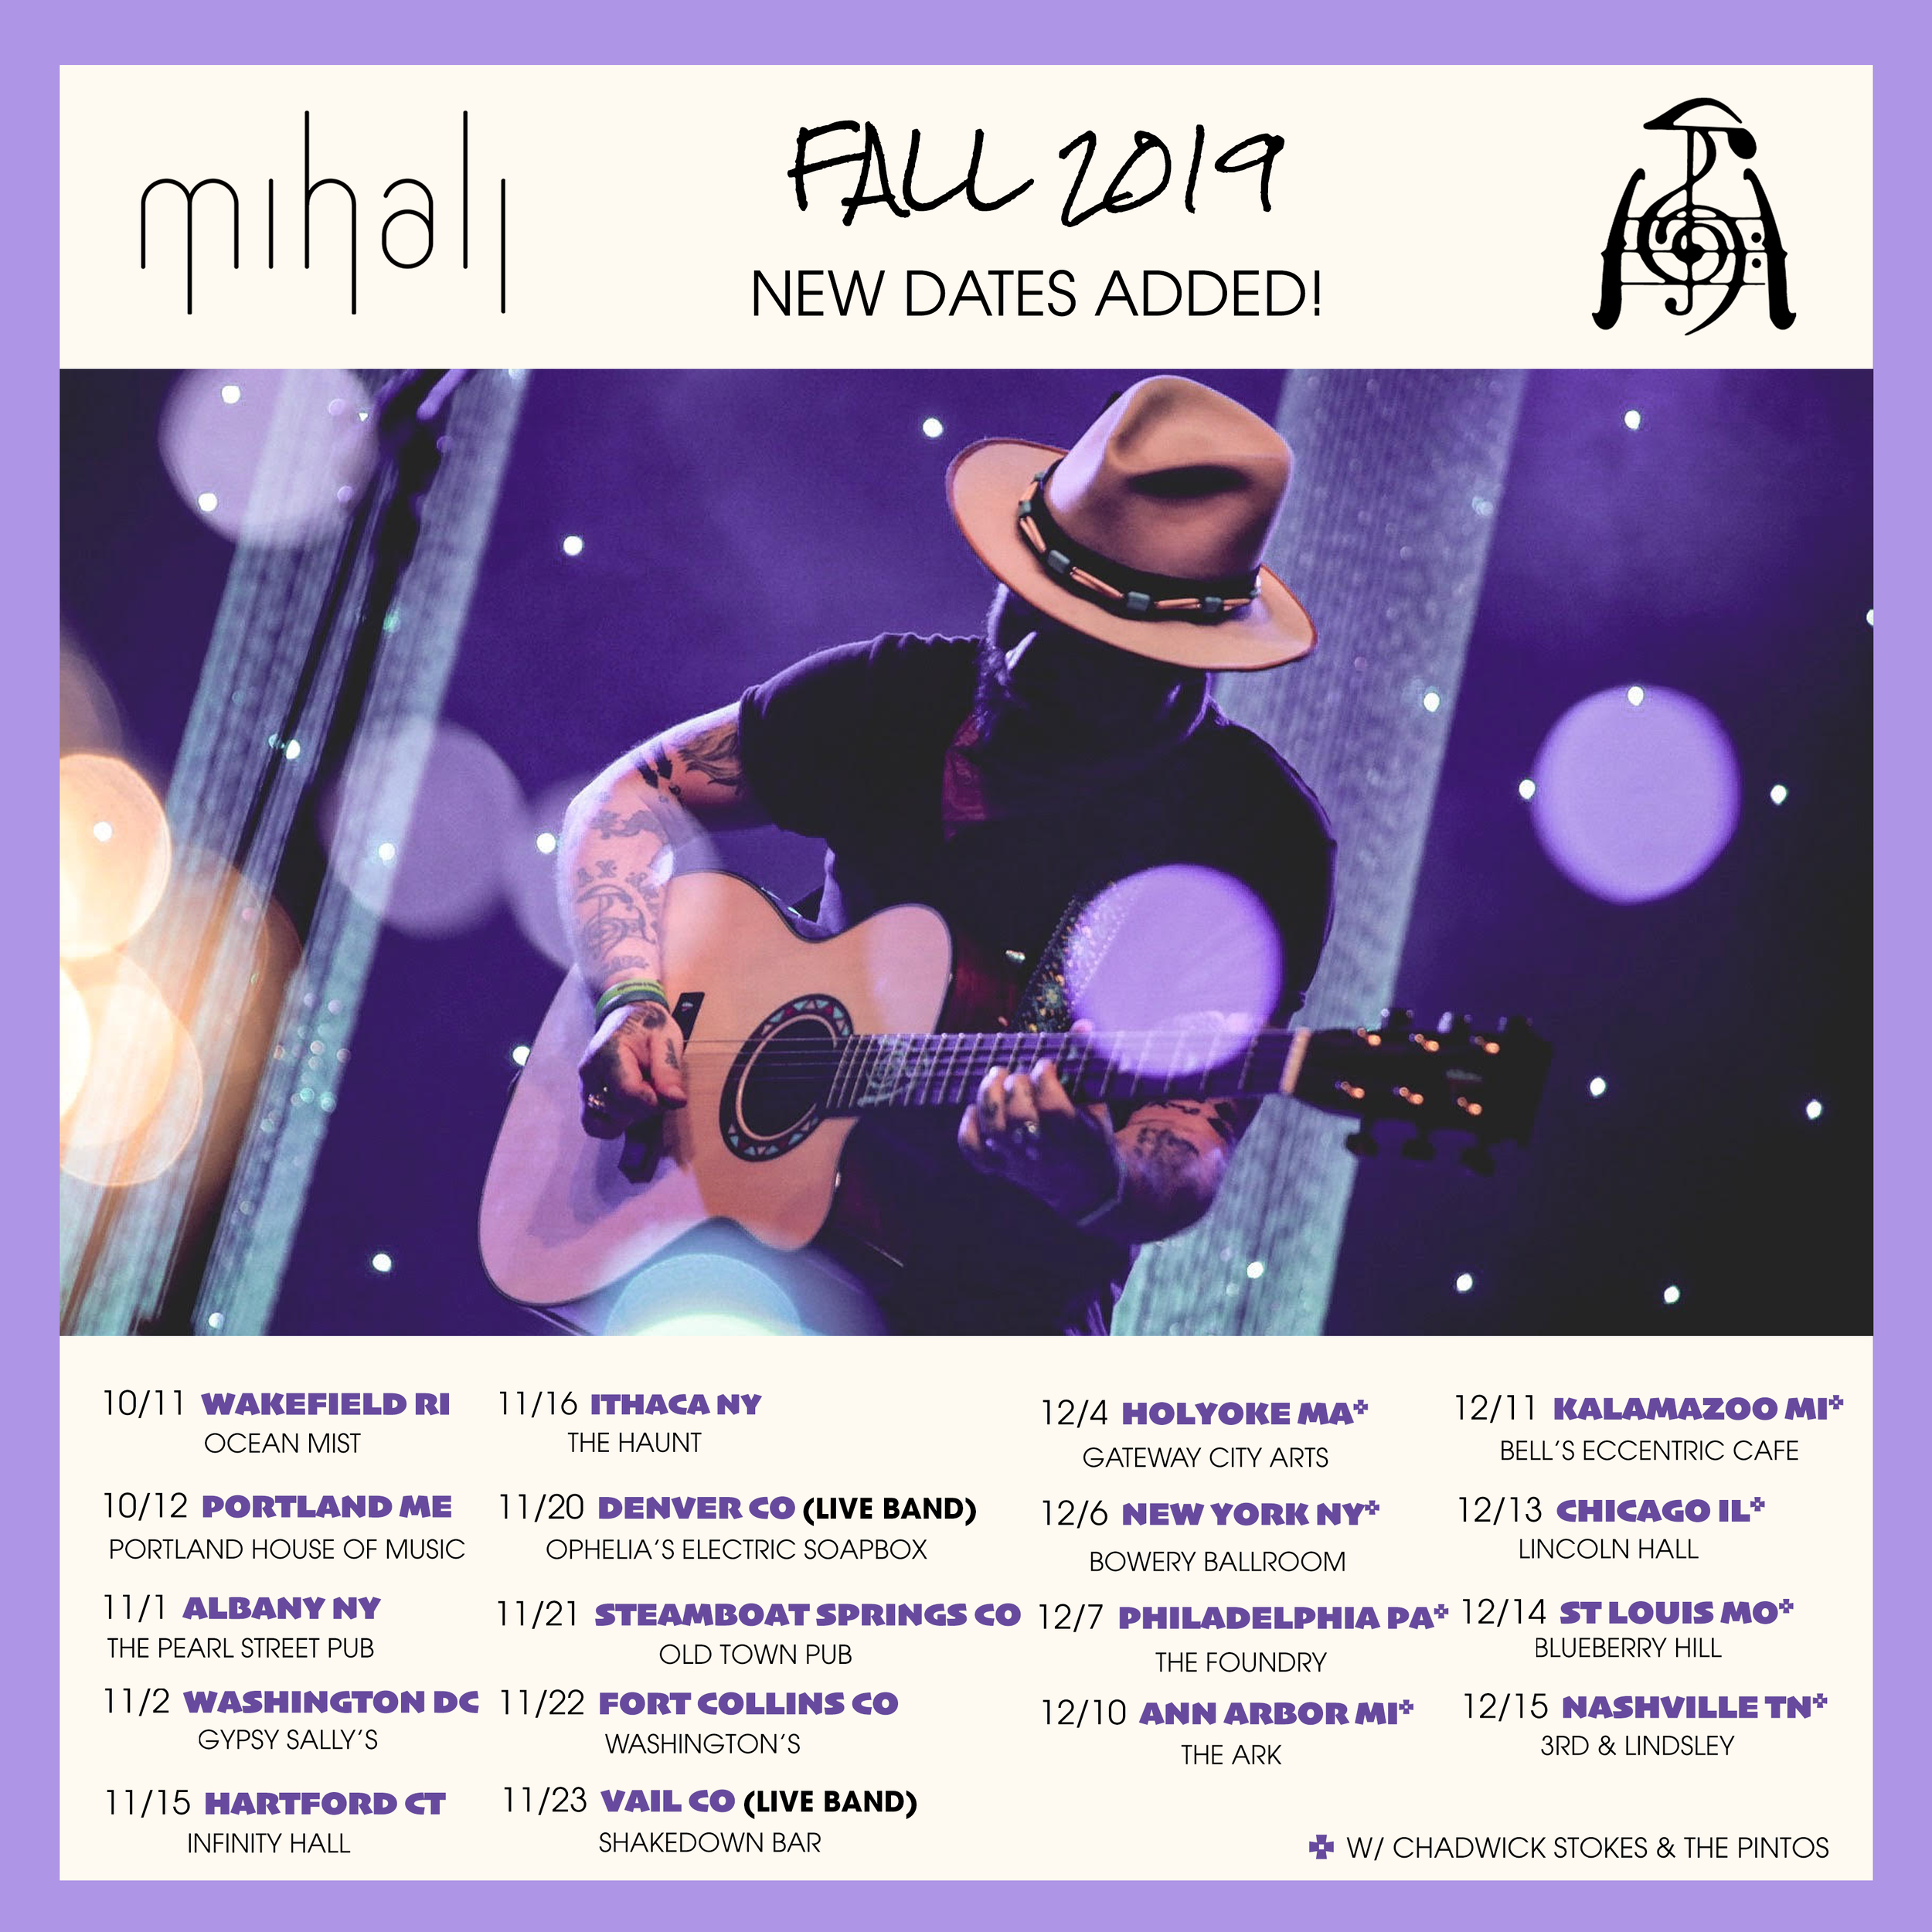 Mihali-fall-instagram-square-phase2.png